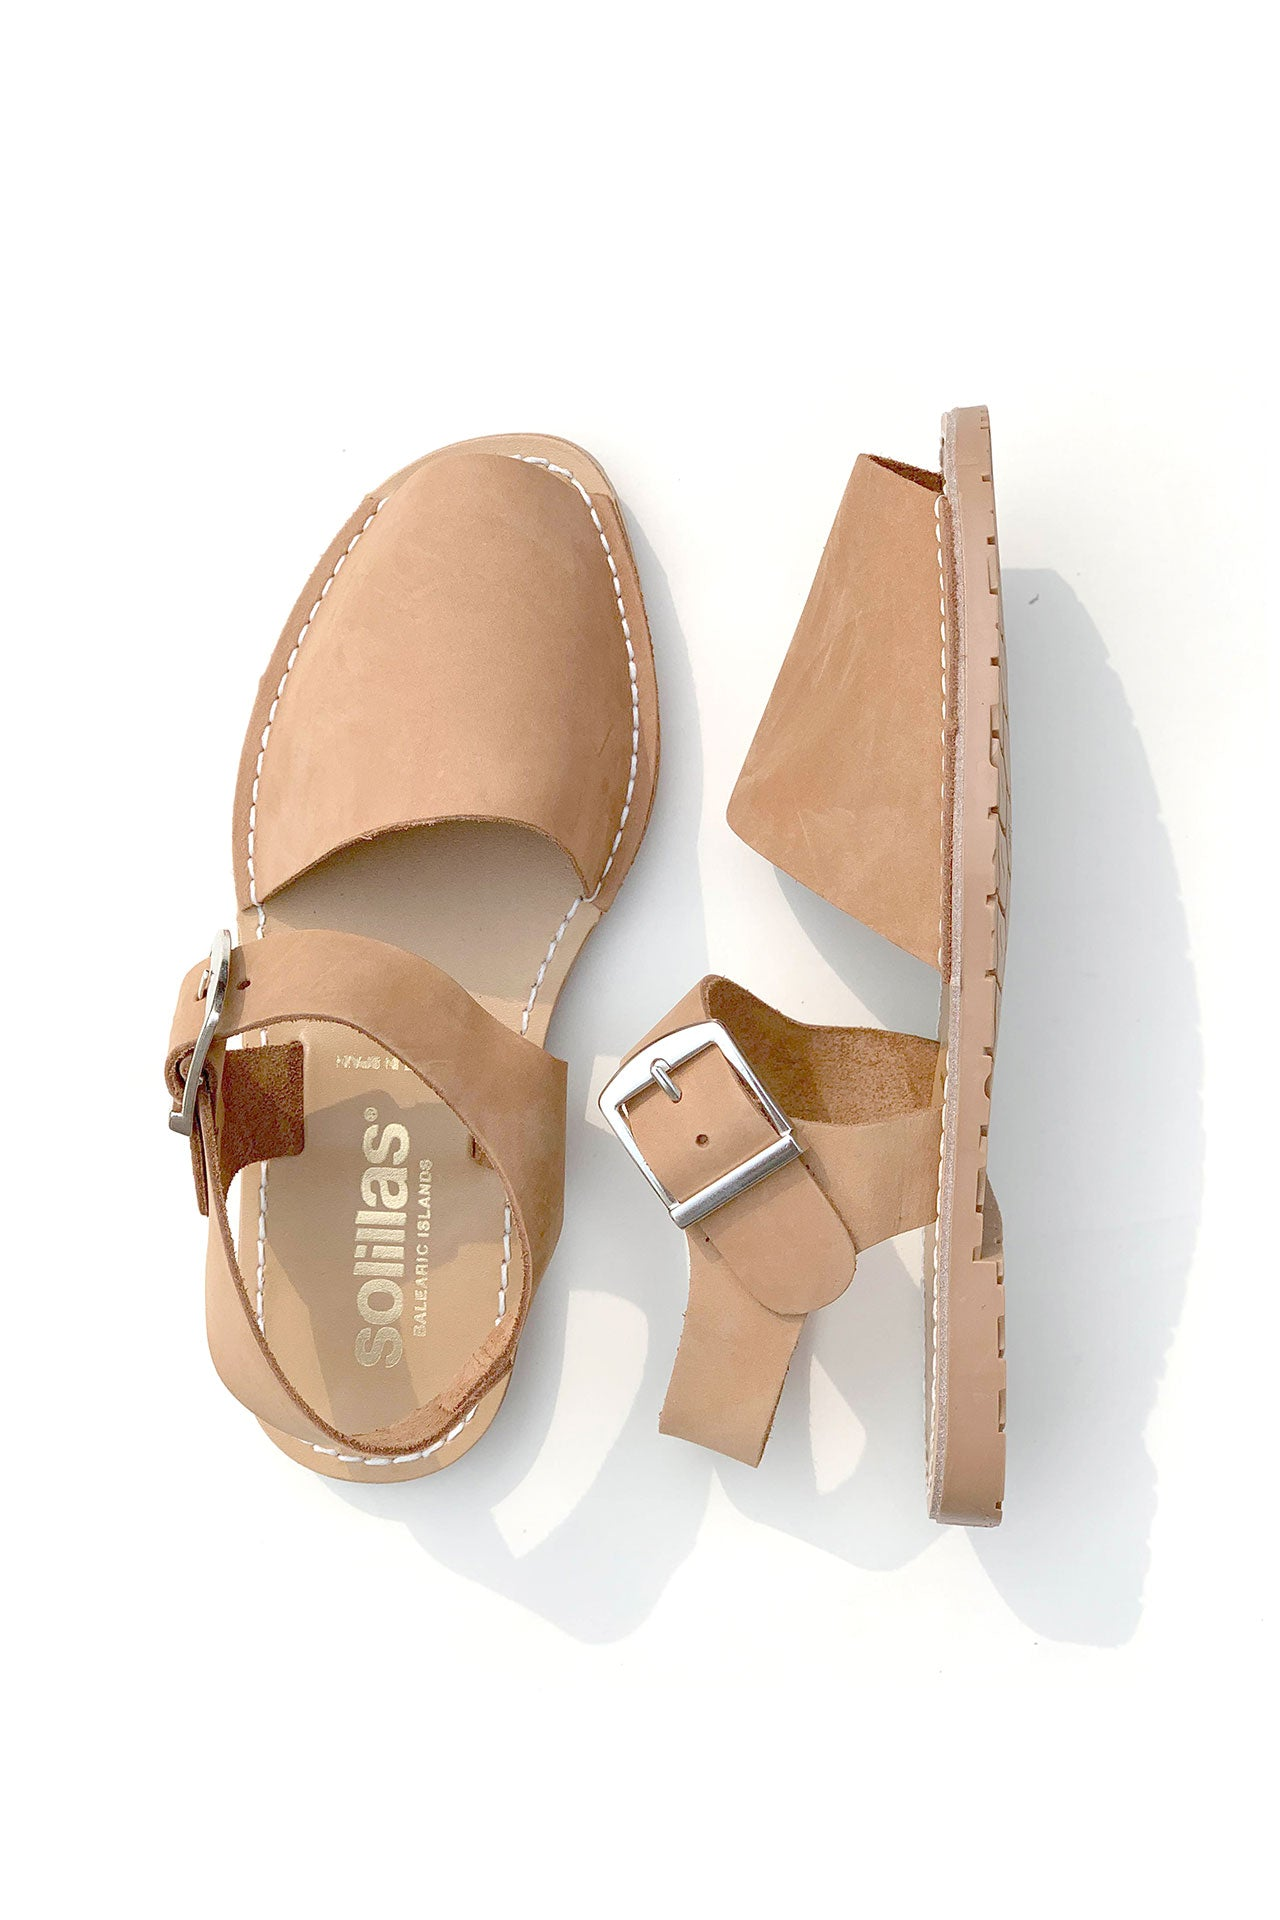 CUERO PESCA - Tan Nubuck Leather Buckle Sandal